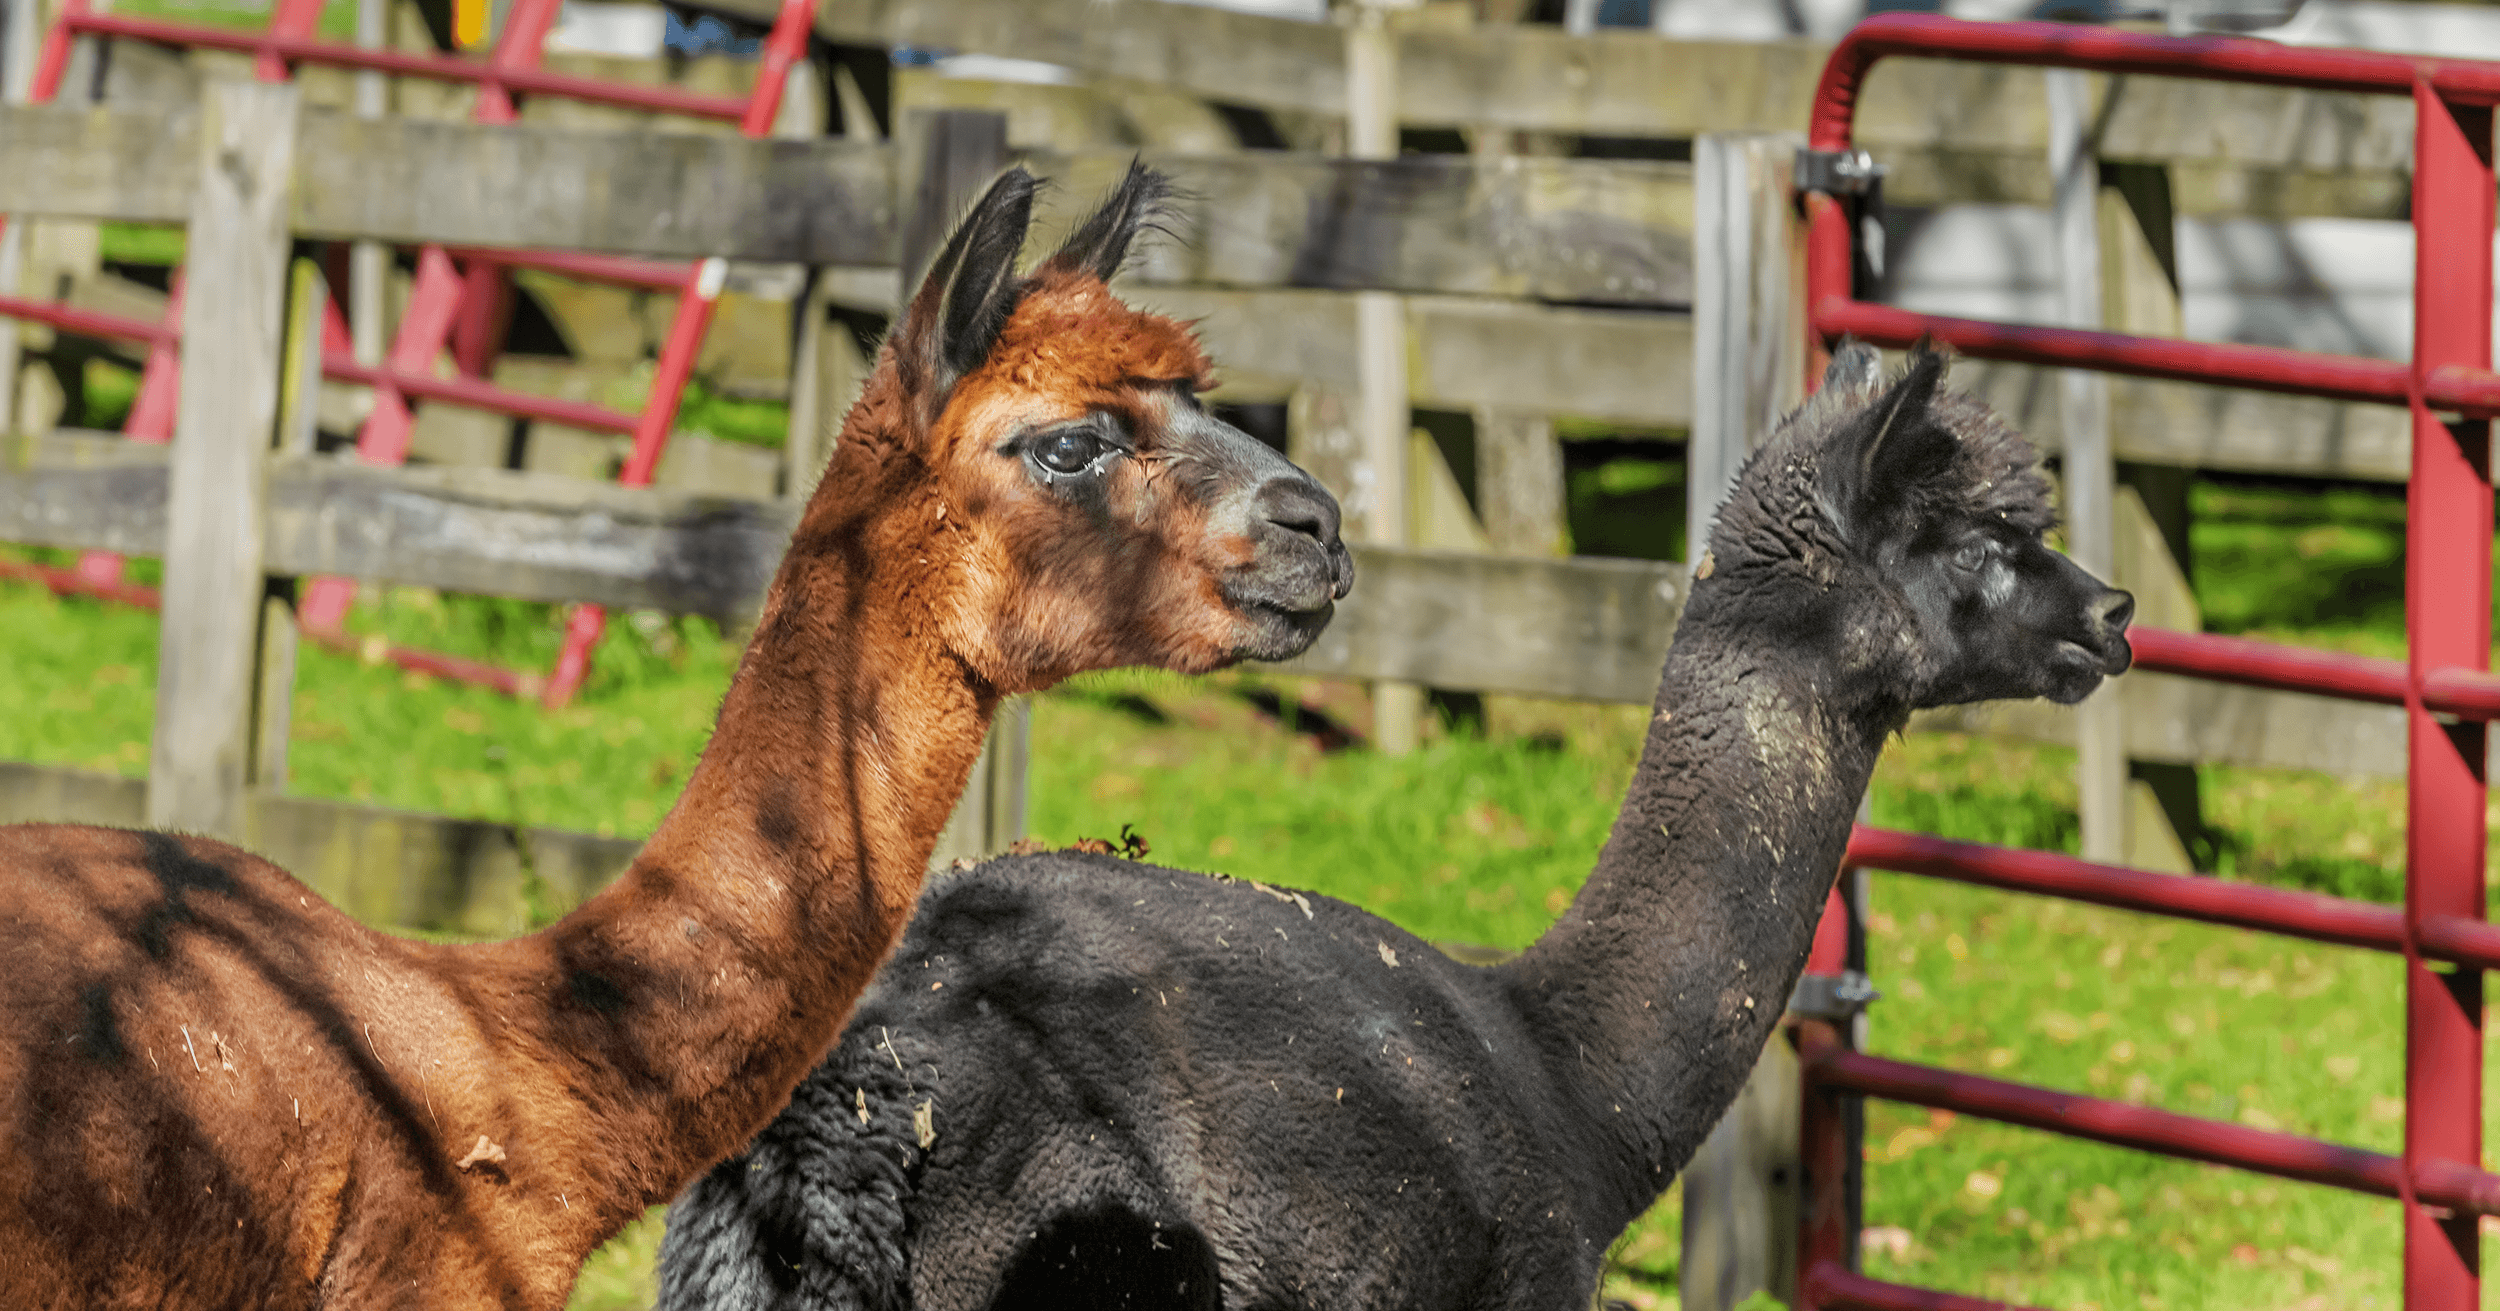 The 10-acre  Apple Hill Farm  had been an apple orchard for 45 years. In 2002, Lee Rankin purchased the apple orchard to realize her dreams. Pursuing her love for alpacas, she turned the apple orchard into a working alpaca farm.